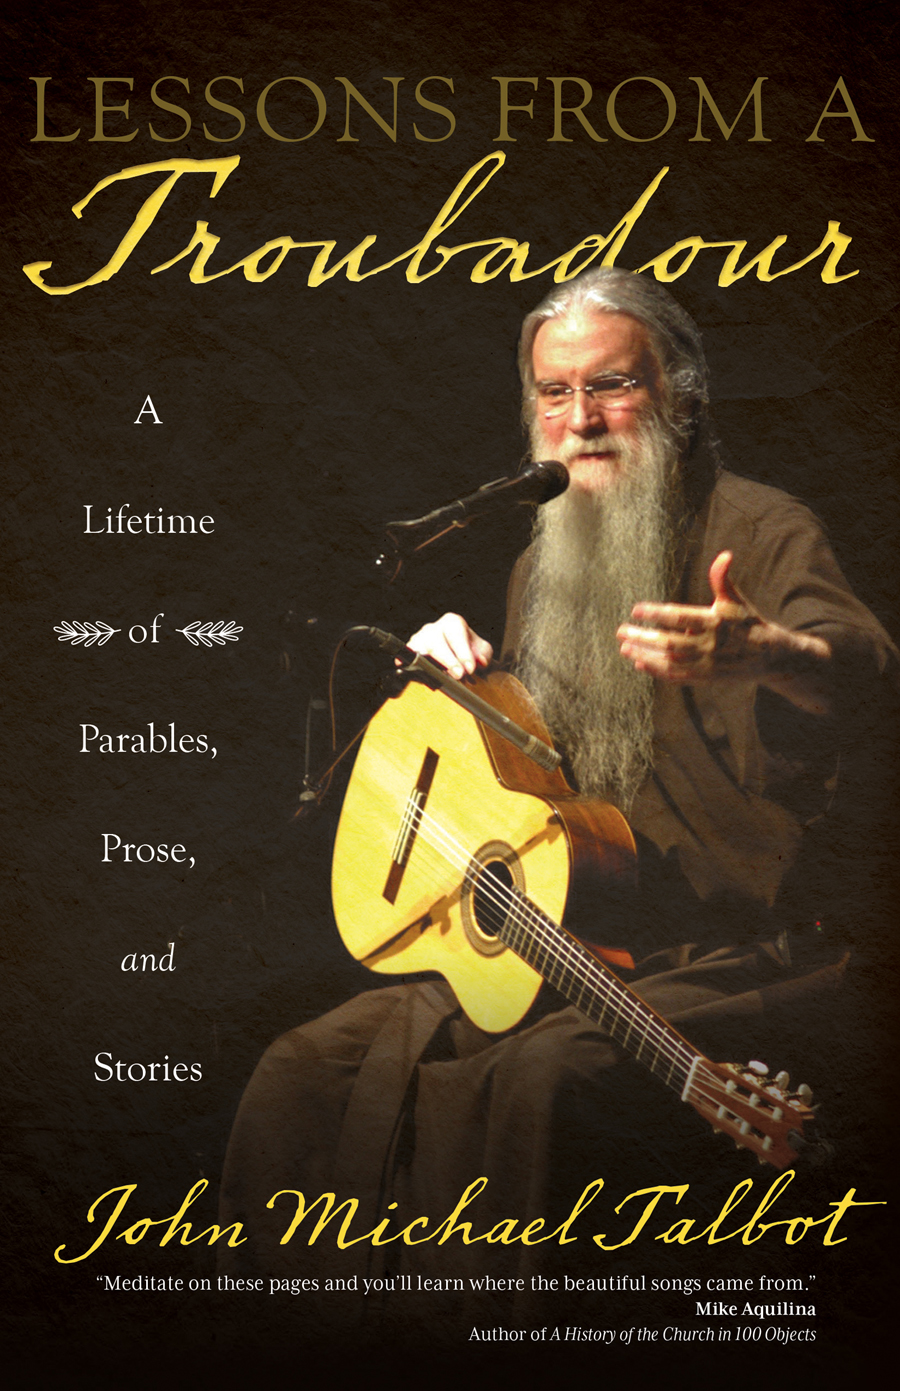 Lessons from a Troubadour